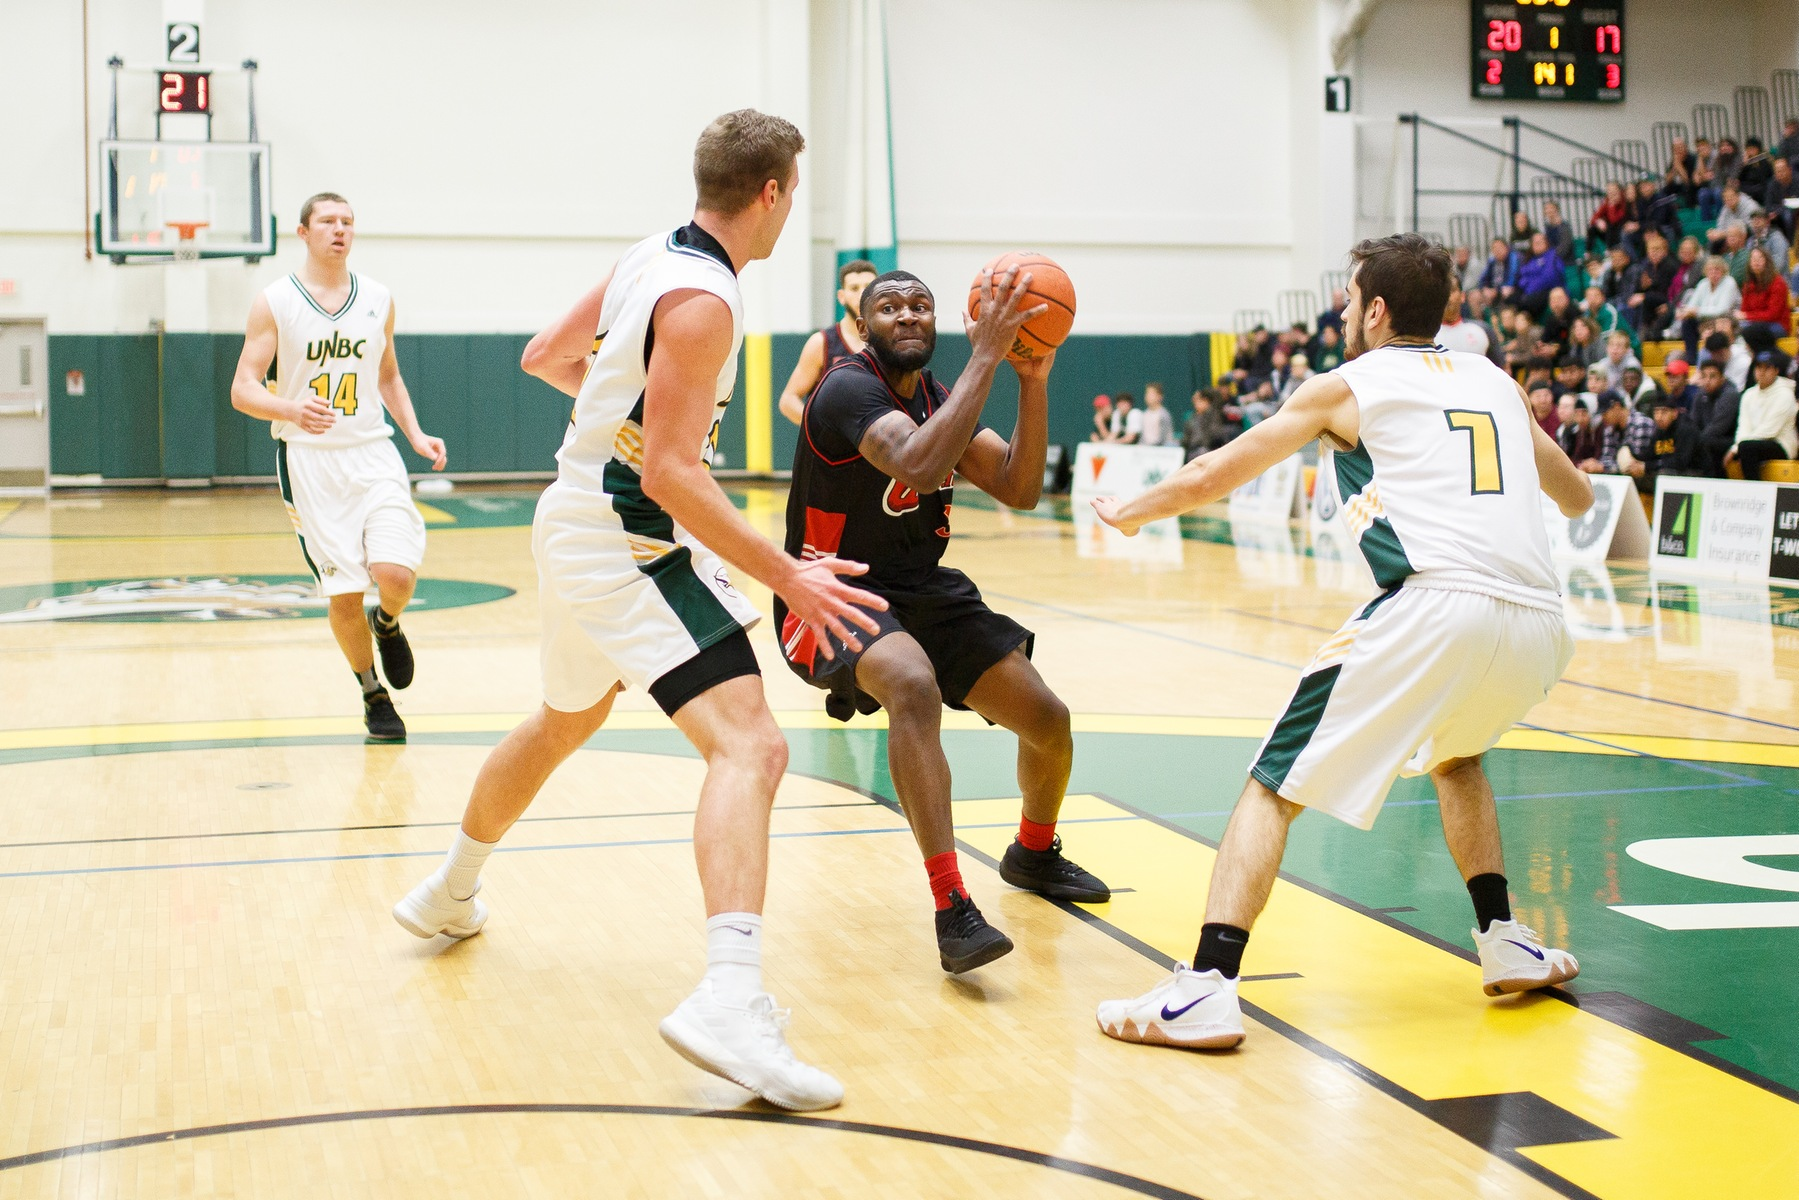 Narcisse Ambanza drives to the hoop during the Winnipeg Wesmen's loss to the UNBC Timberwolves on Friday, Nov. 2, 2018. (UNBC Athletics photo)